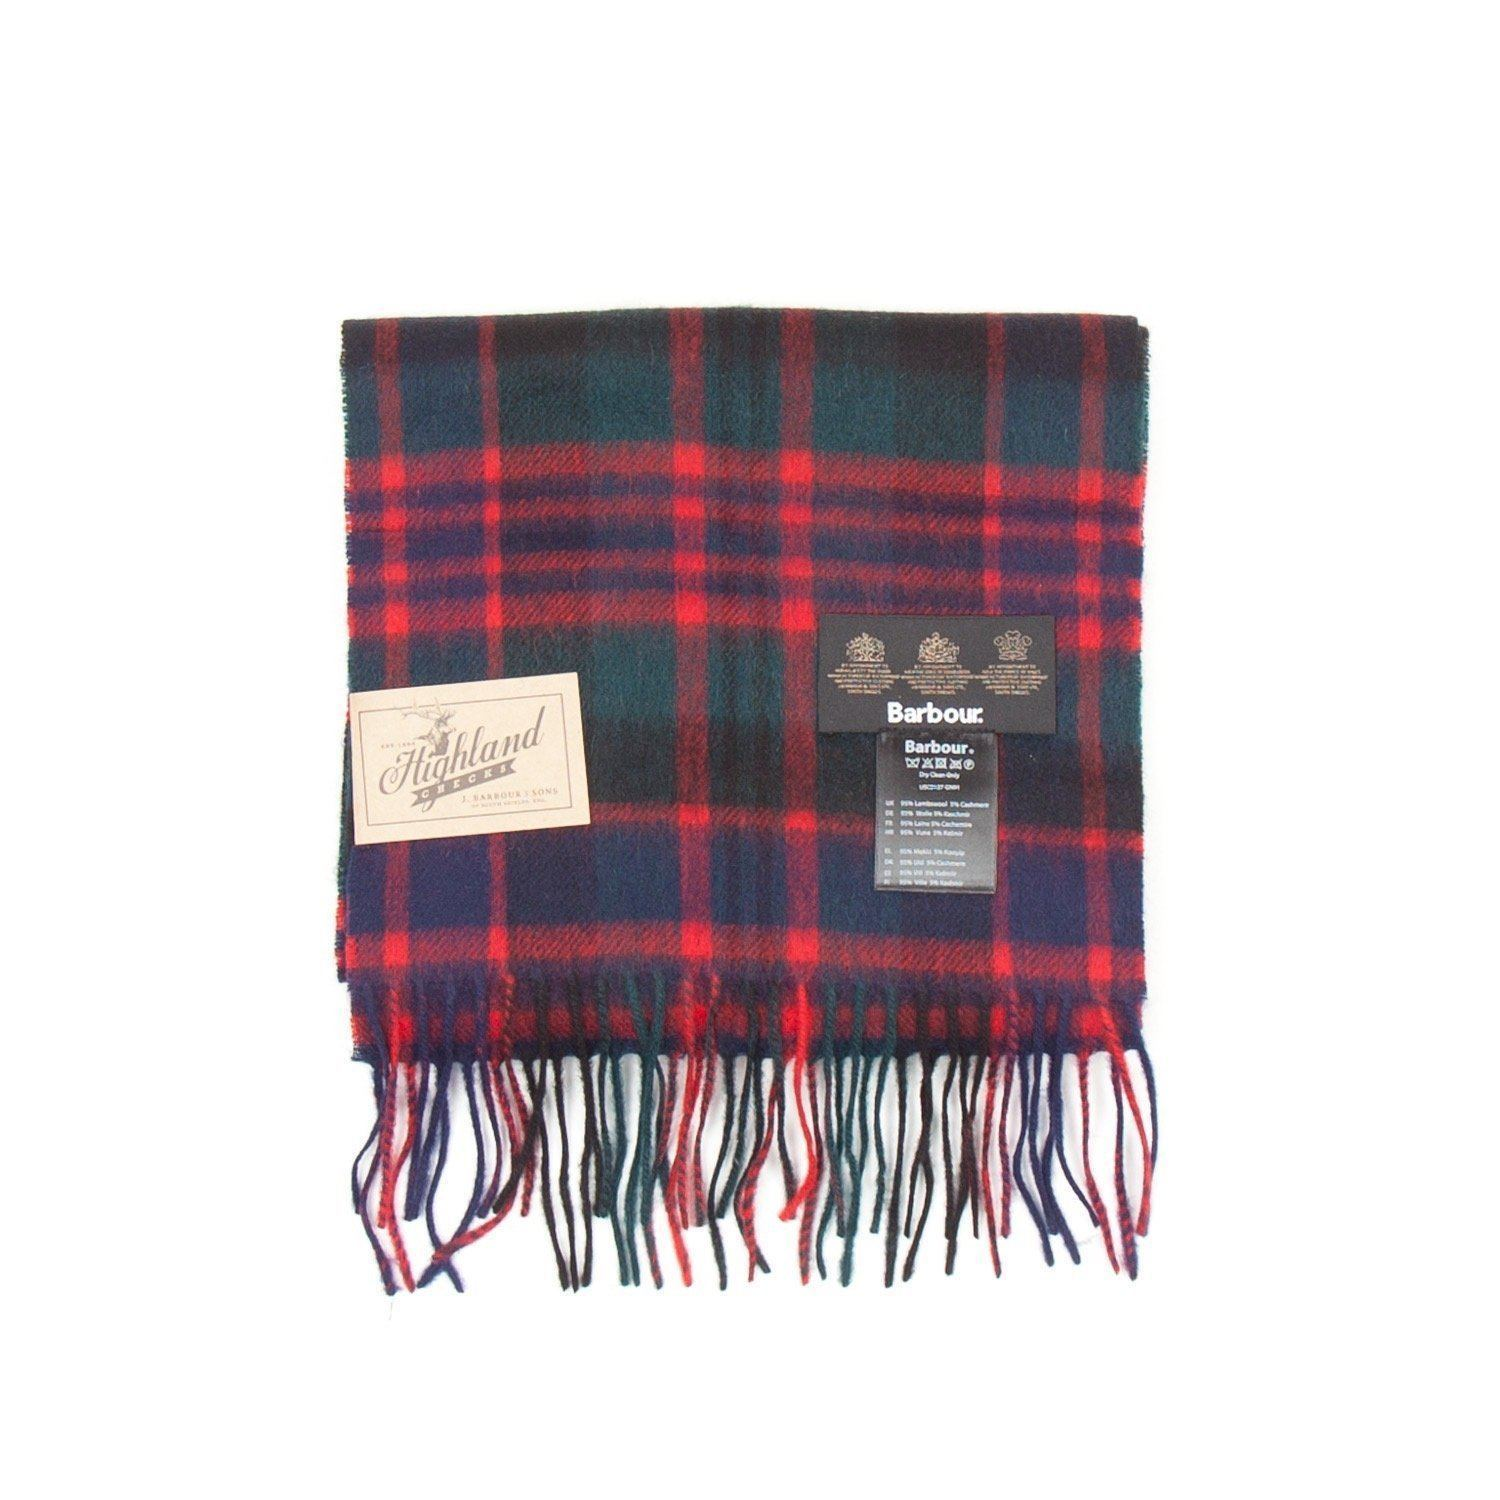 Barbour New Check Tartan Scarf (Macdonald)